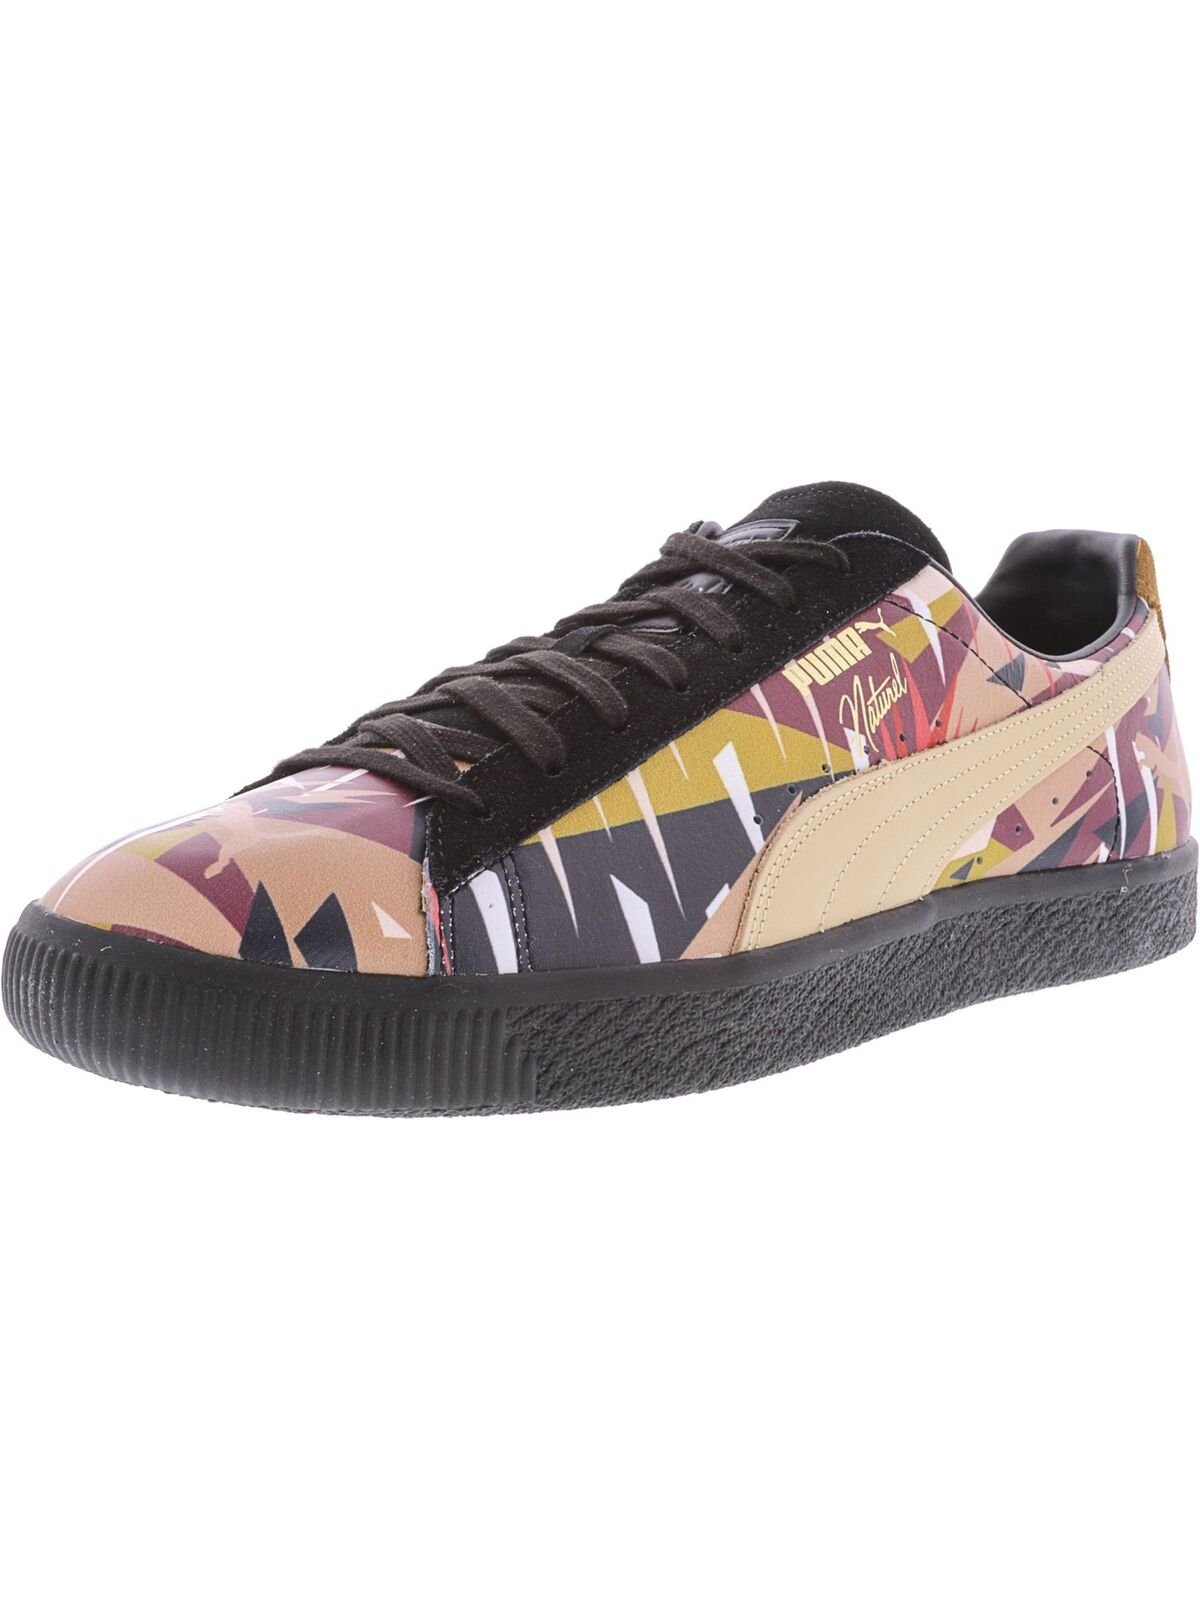 new style e3b28 21d70 Puma Men s Clyde Moon Jungle Naturel Ankle-High Fashion Sneaker Leather  nobwku8095-Men s Trainers